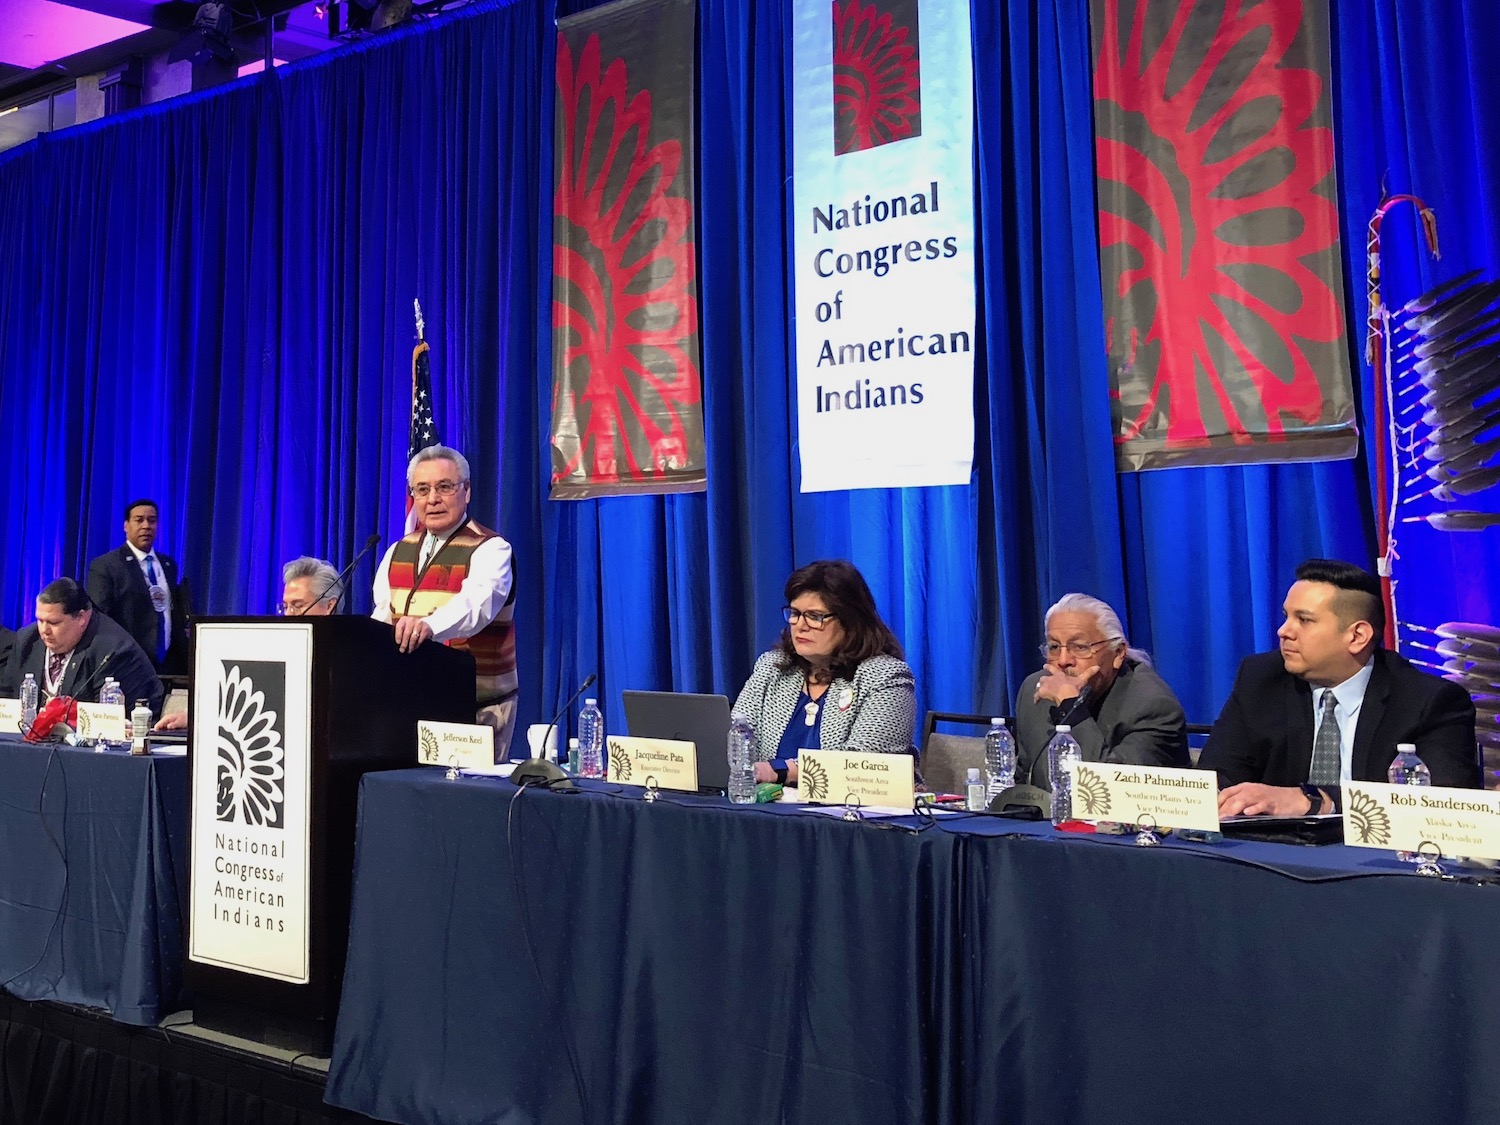 Leader of National Congress of American Indians slams 'fugitives' bill